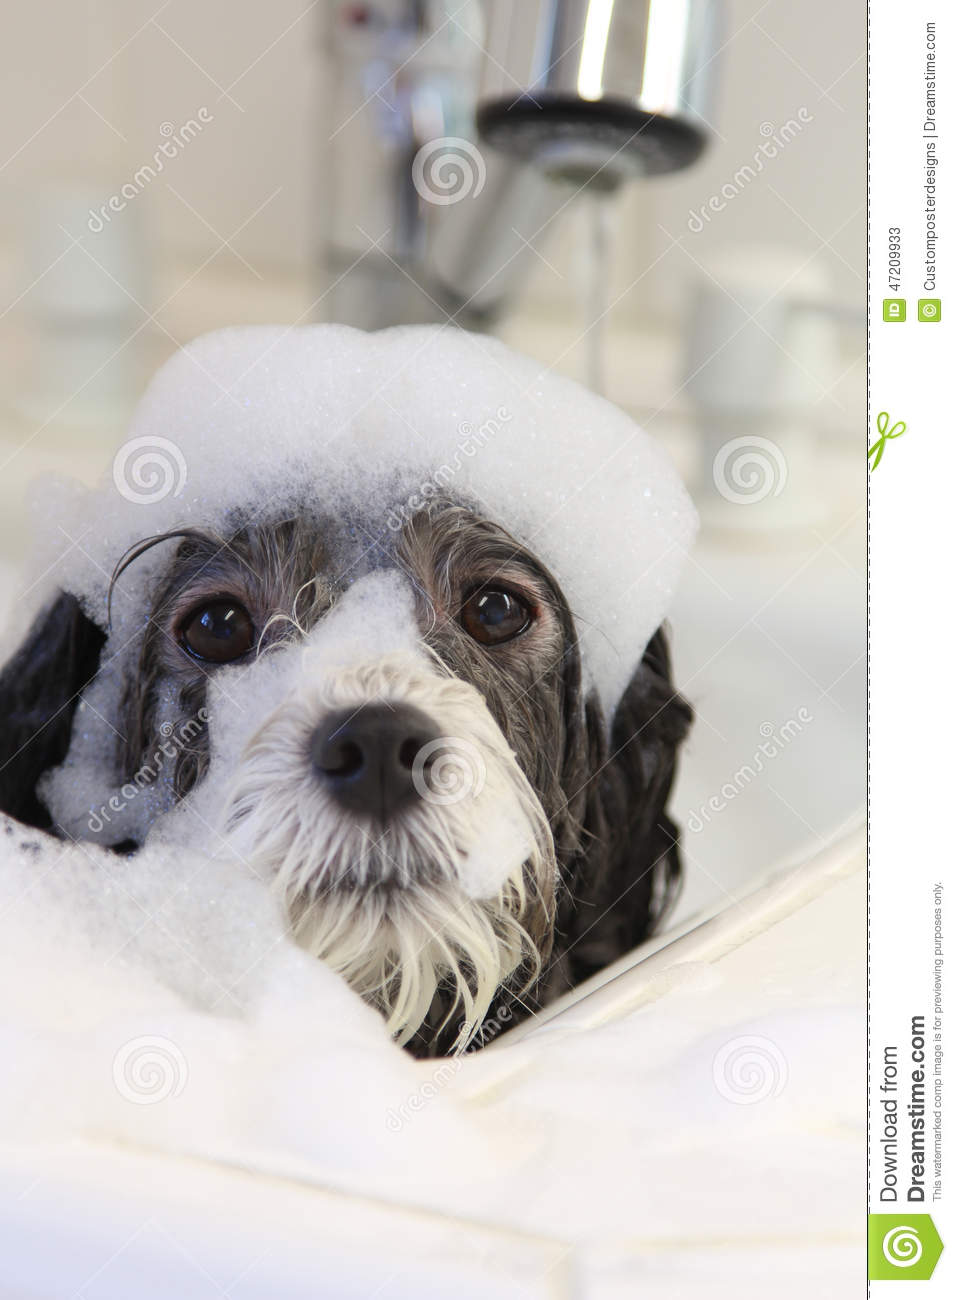 Download A dog taking a bath. stock image. Image of cute, canine - 47209933